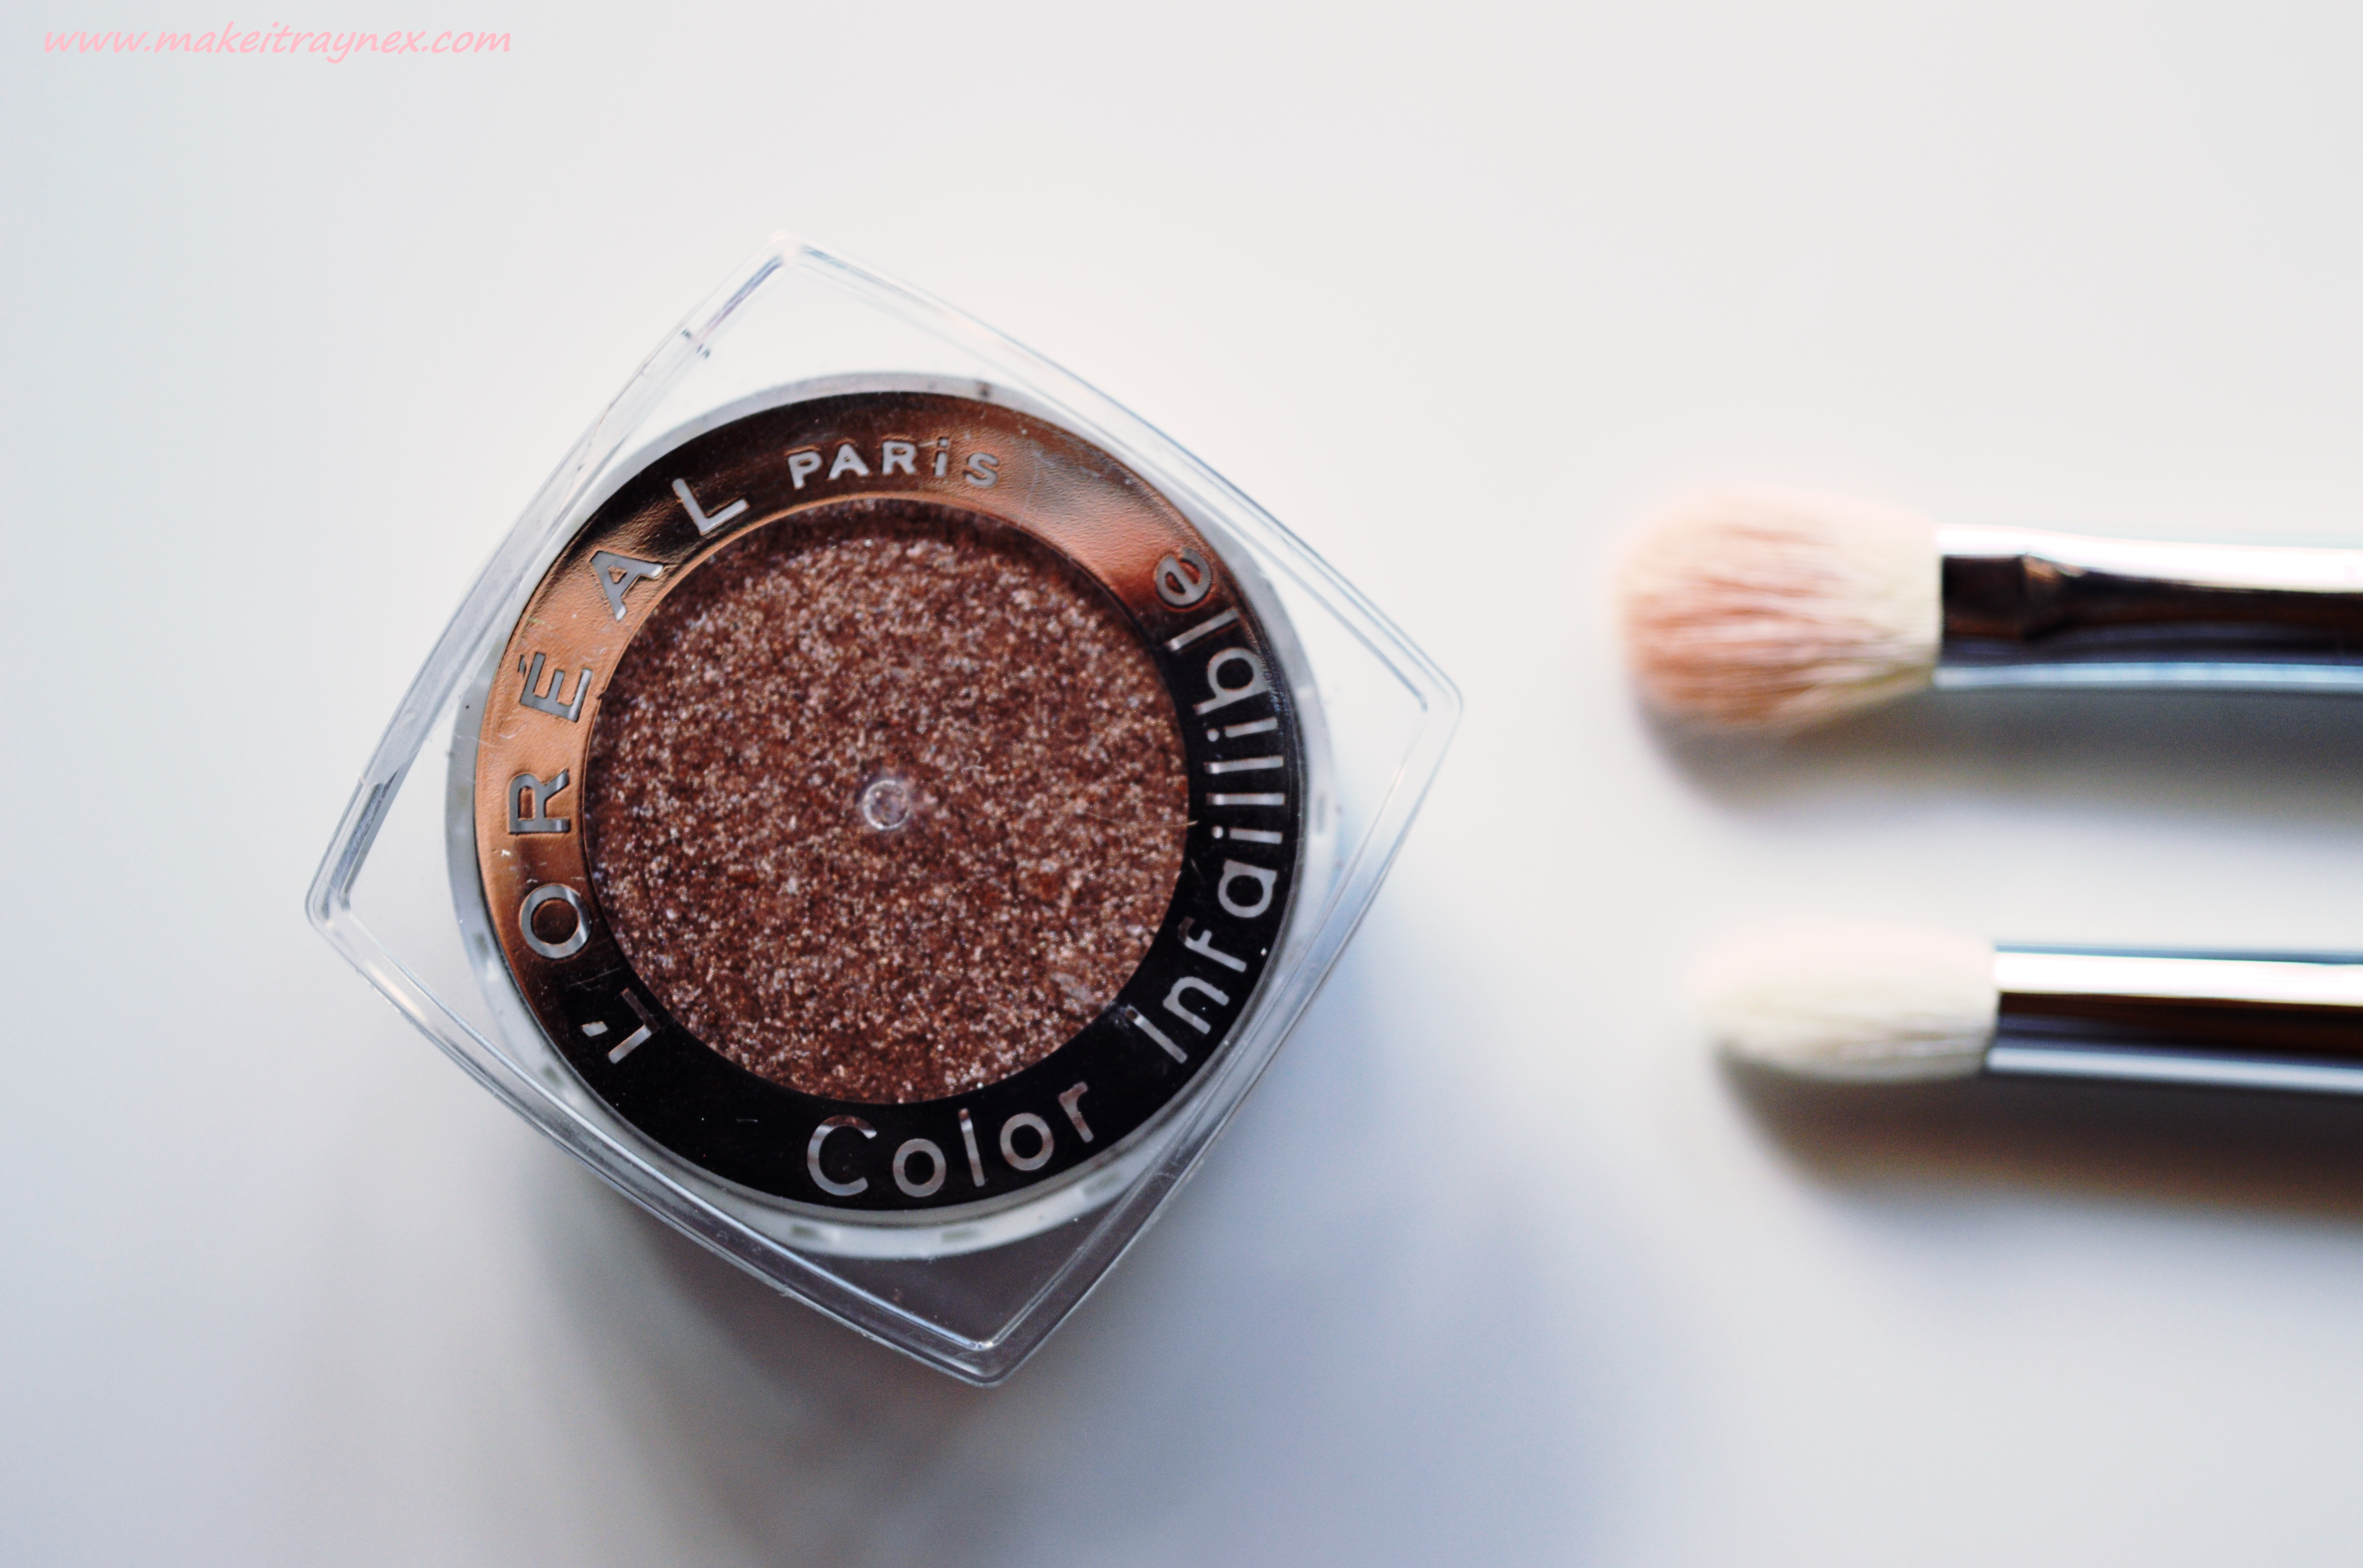 Color Infaillible Eyeshadow in 033 Tender Caramel by L'Oreal {REVIEW}